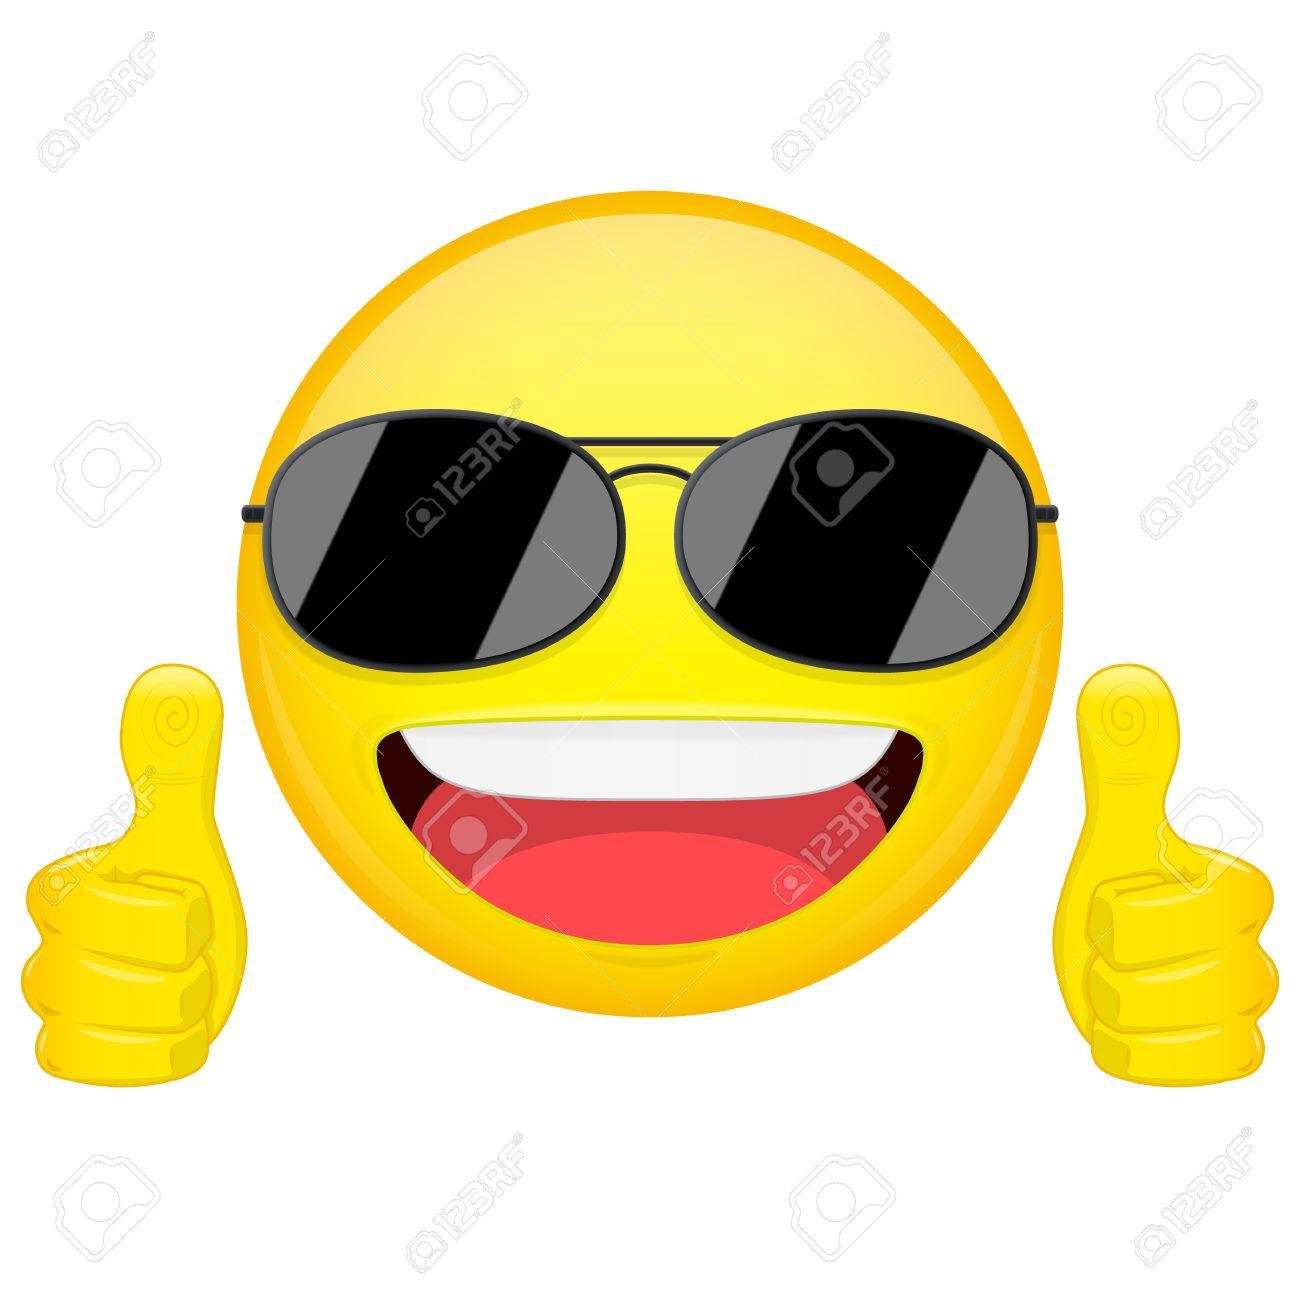 good idea emoji. thumbs up emotion. cool guy with sunglasses